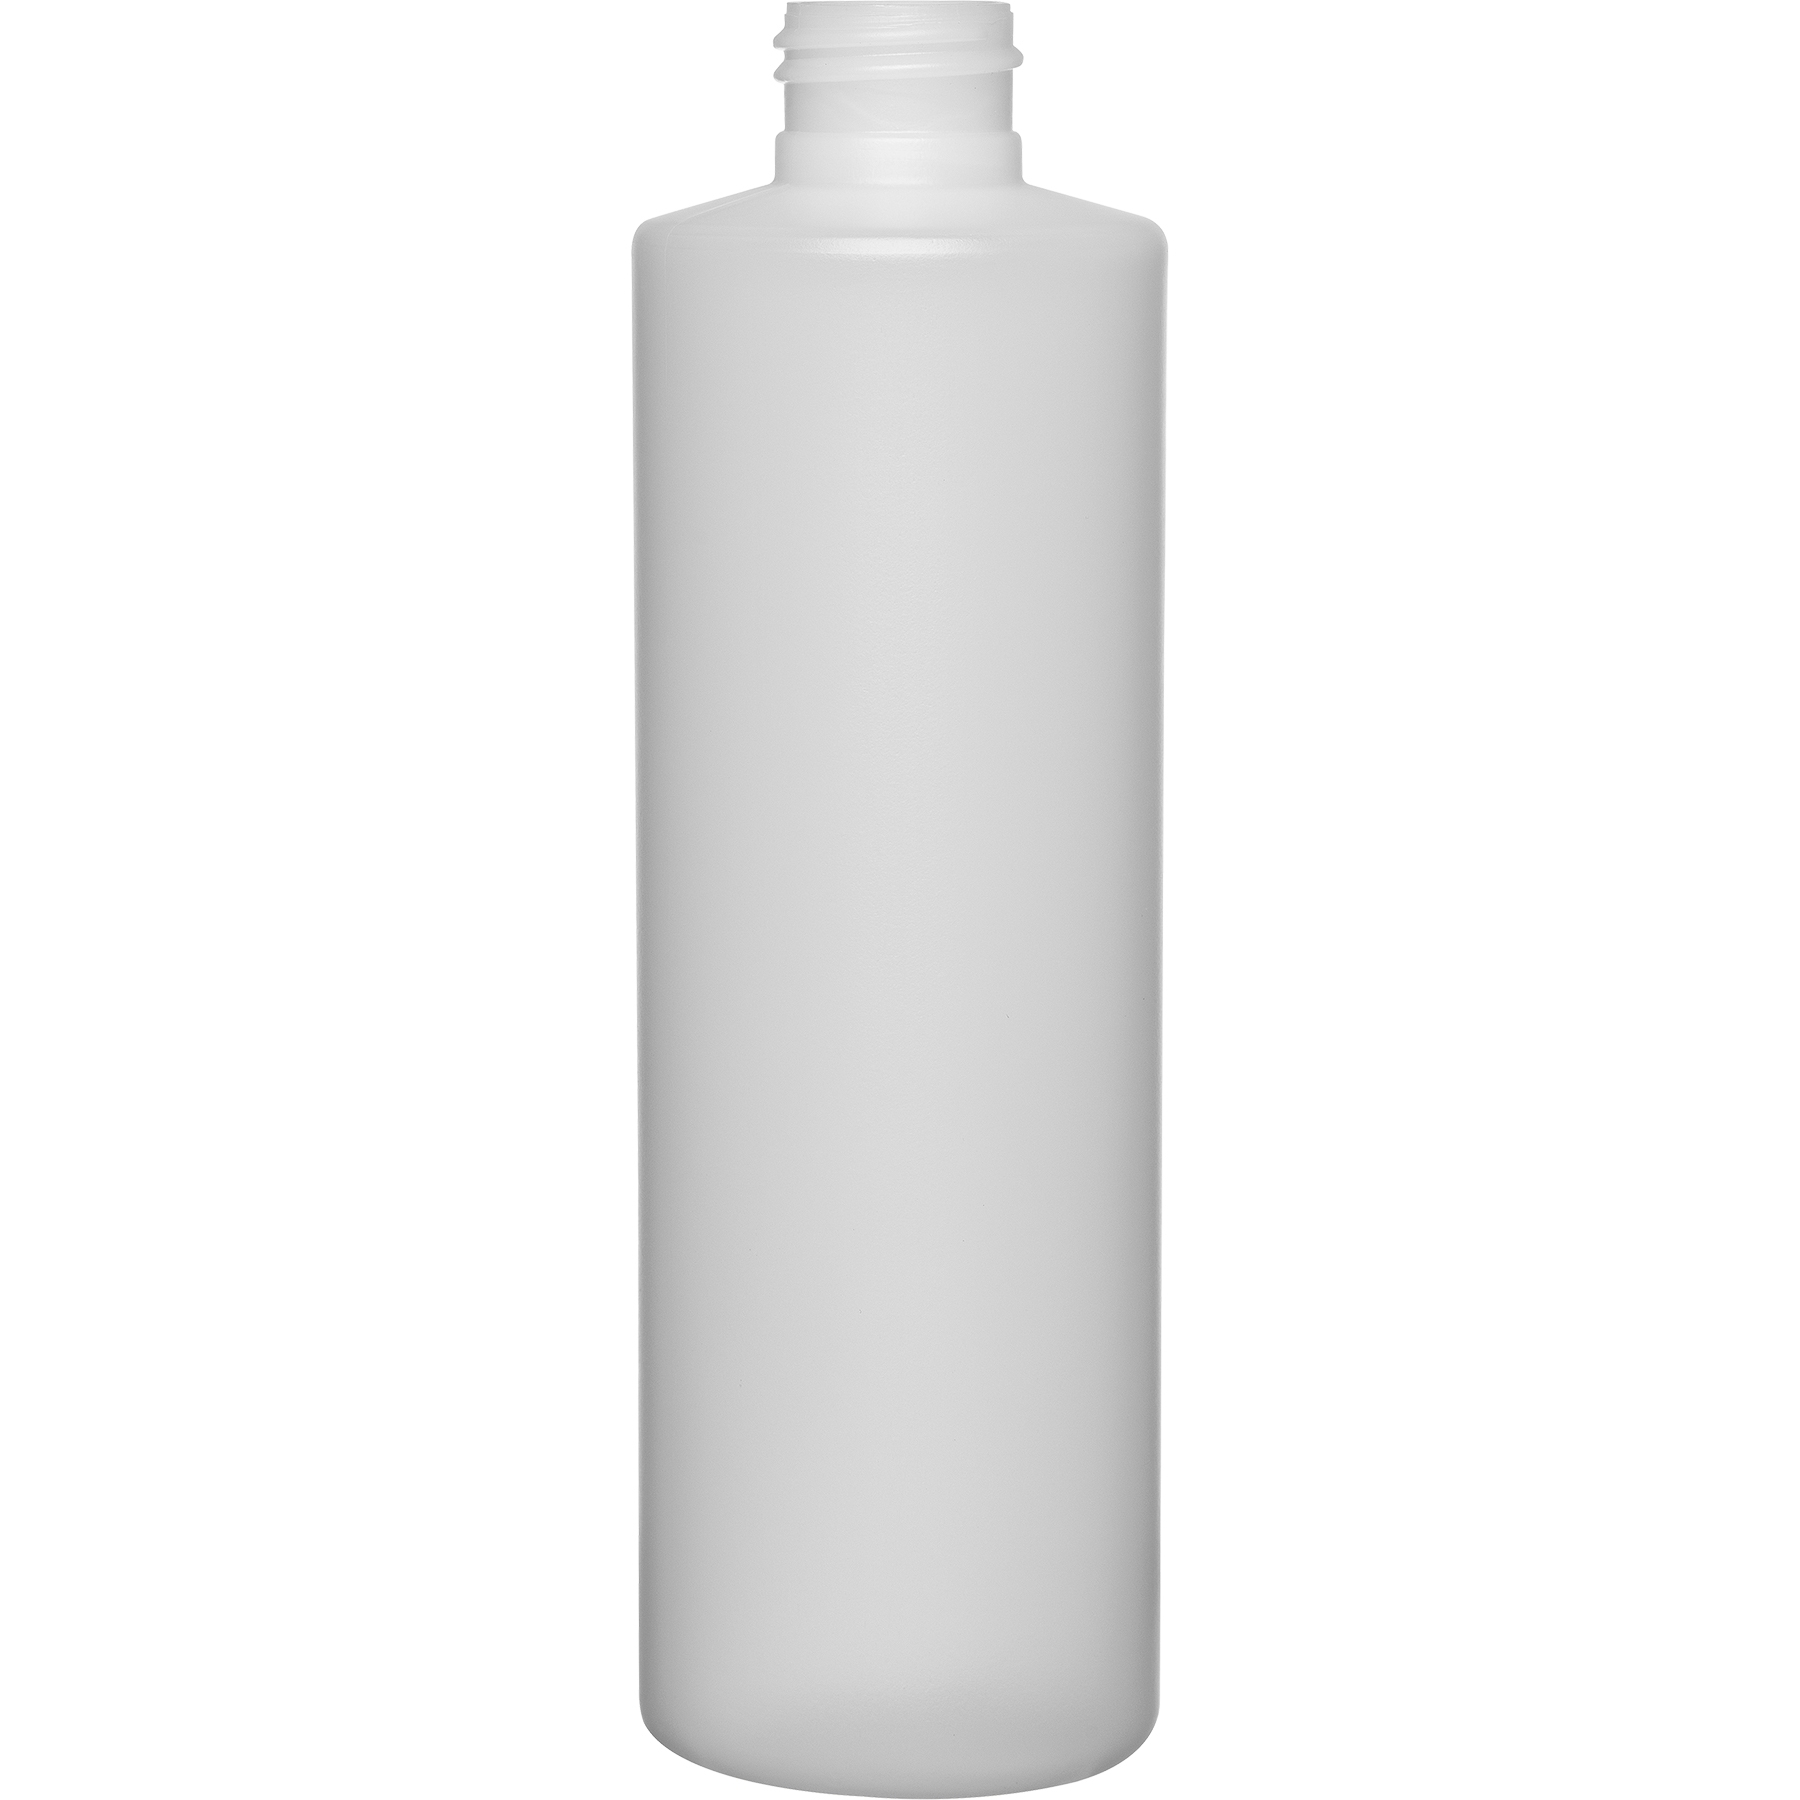 Black Polypropylene Ribbed Cap with F217 Liner for 24mm by 410 Thread Mouth Bottle 48 Caps